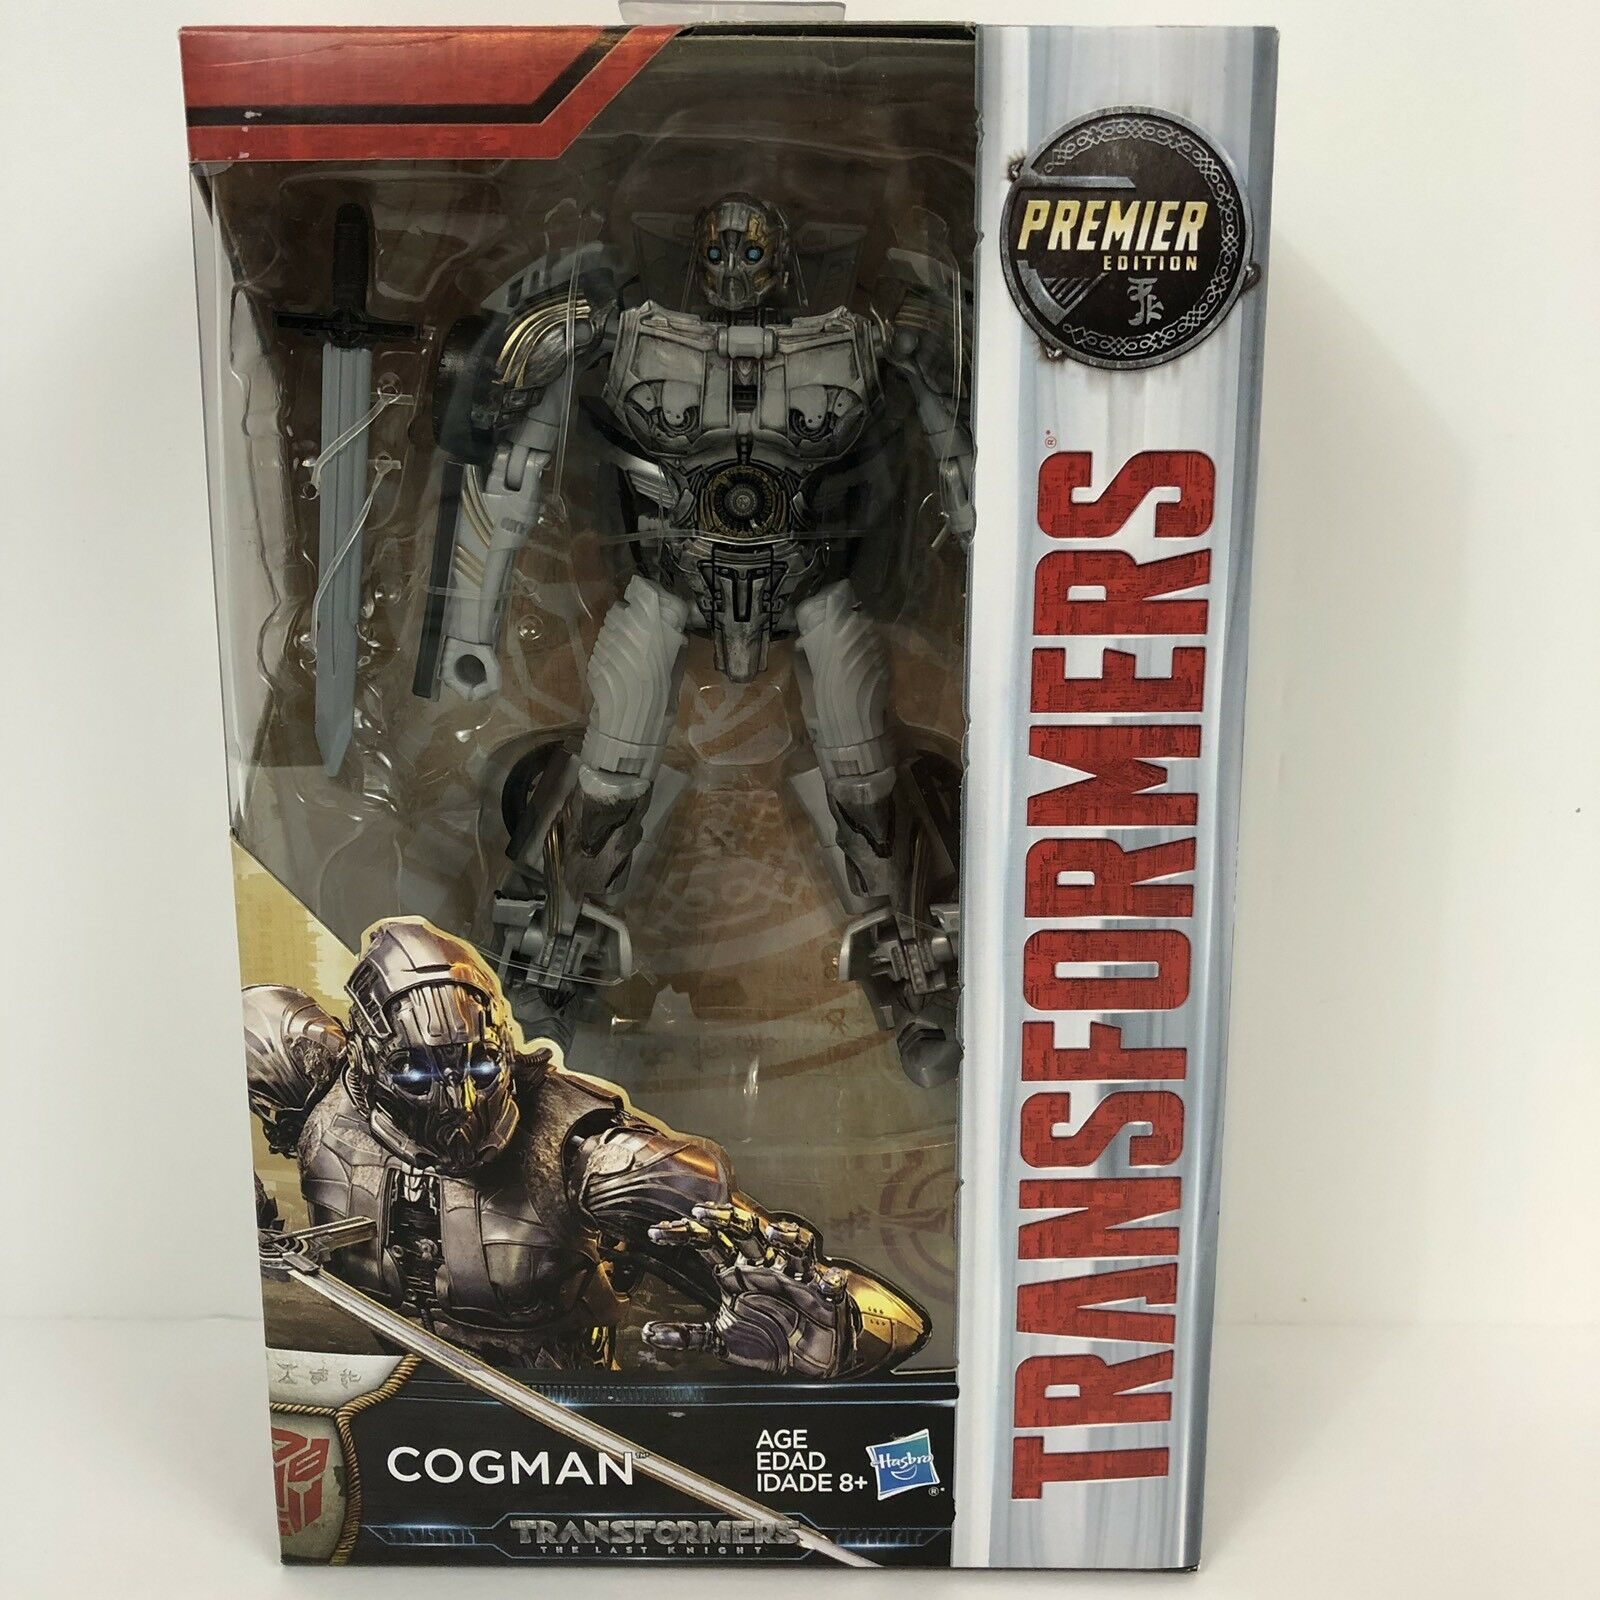 Transformers MV5 Hasbro Last Knight Premier Ed Deluxe W3 Cogman In stock